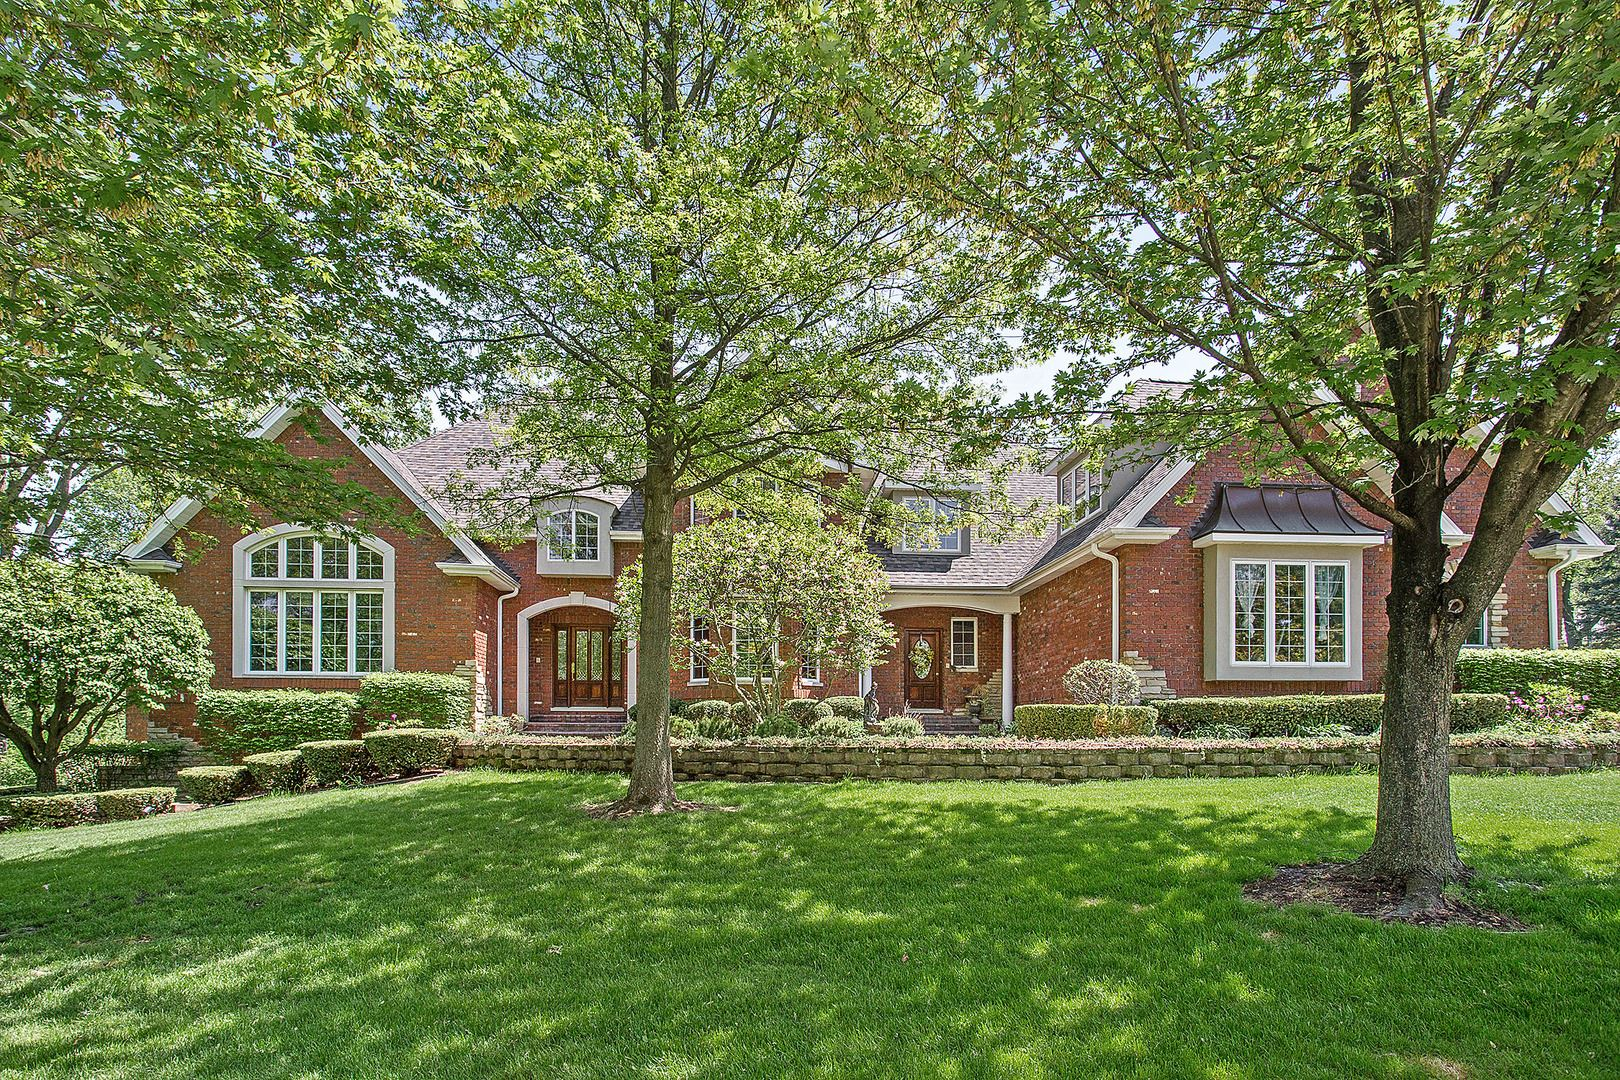 10801 Crystal Springs Lane, Orland Park, IL 60467 - #: 11018926